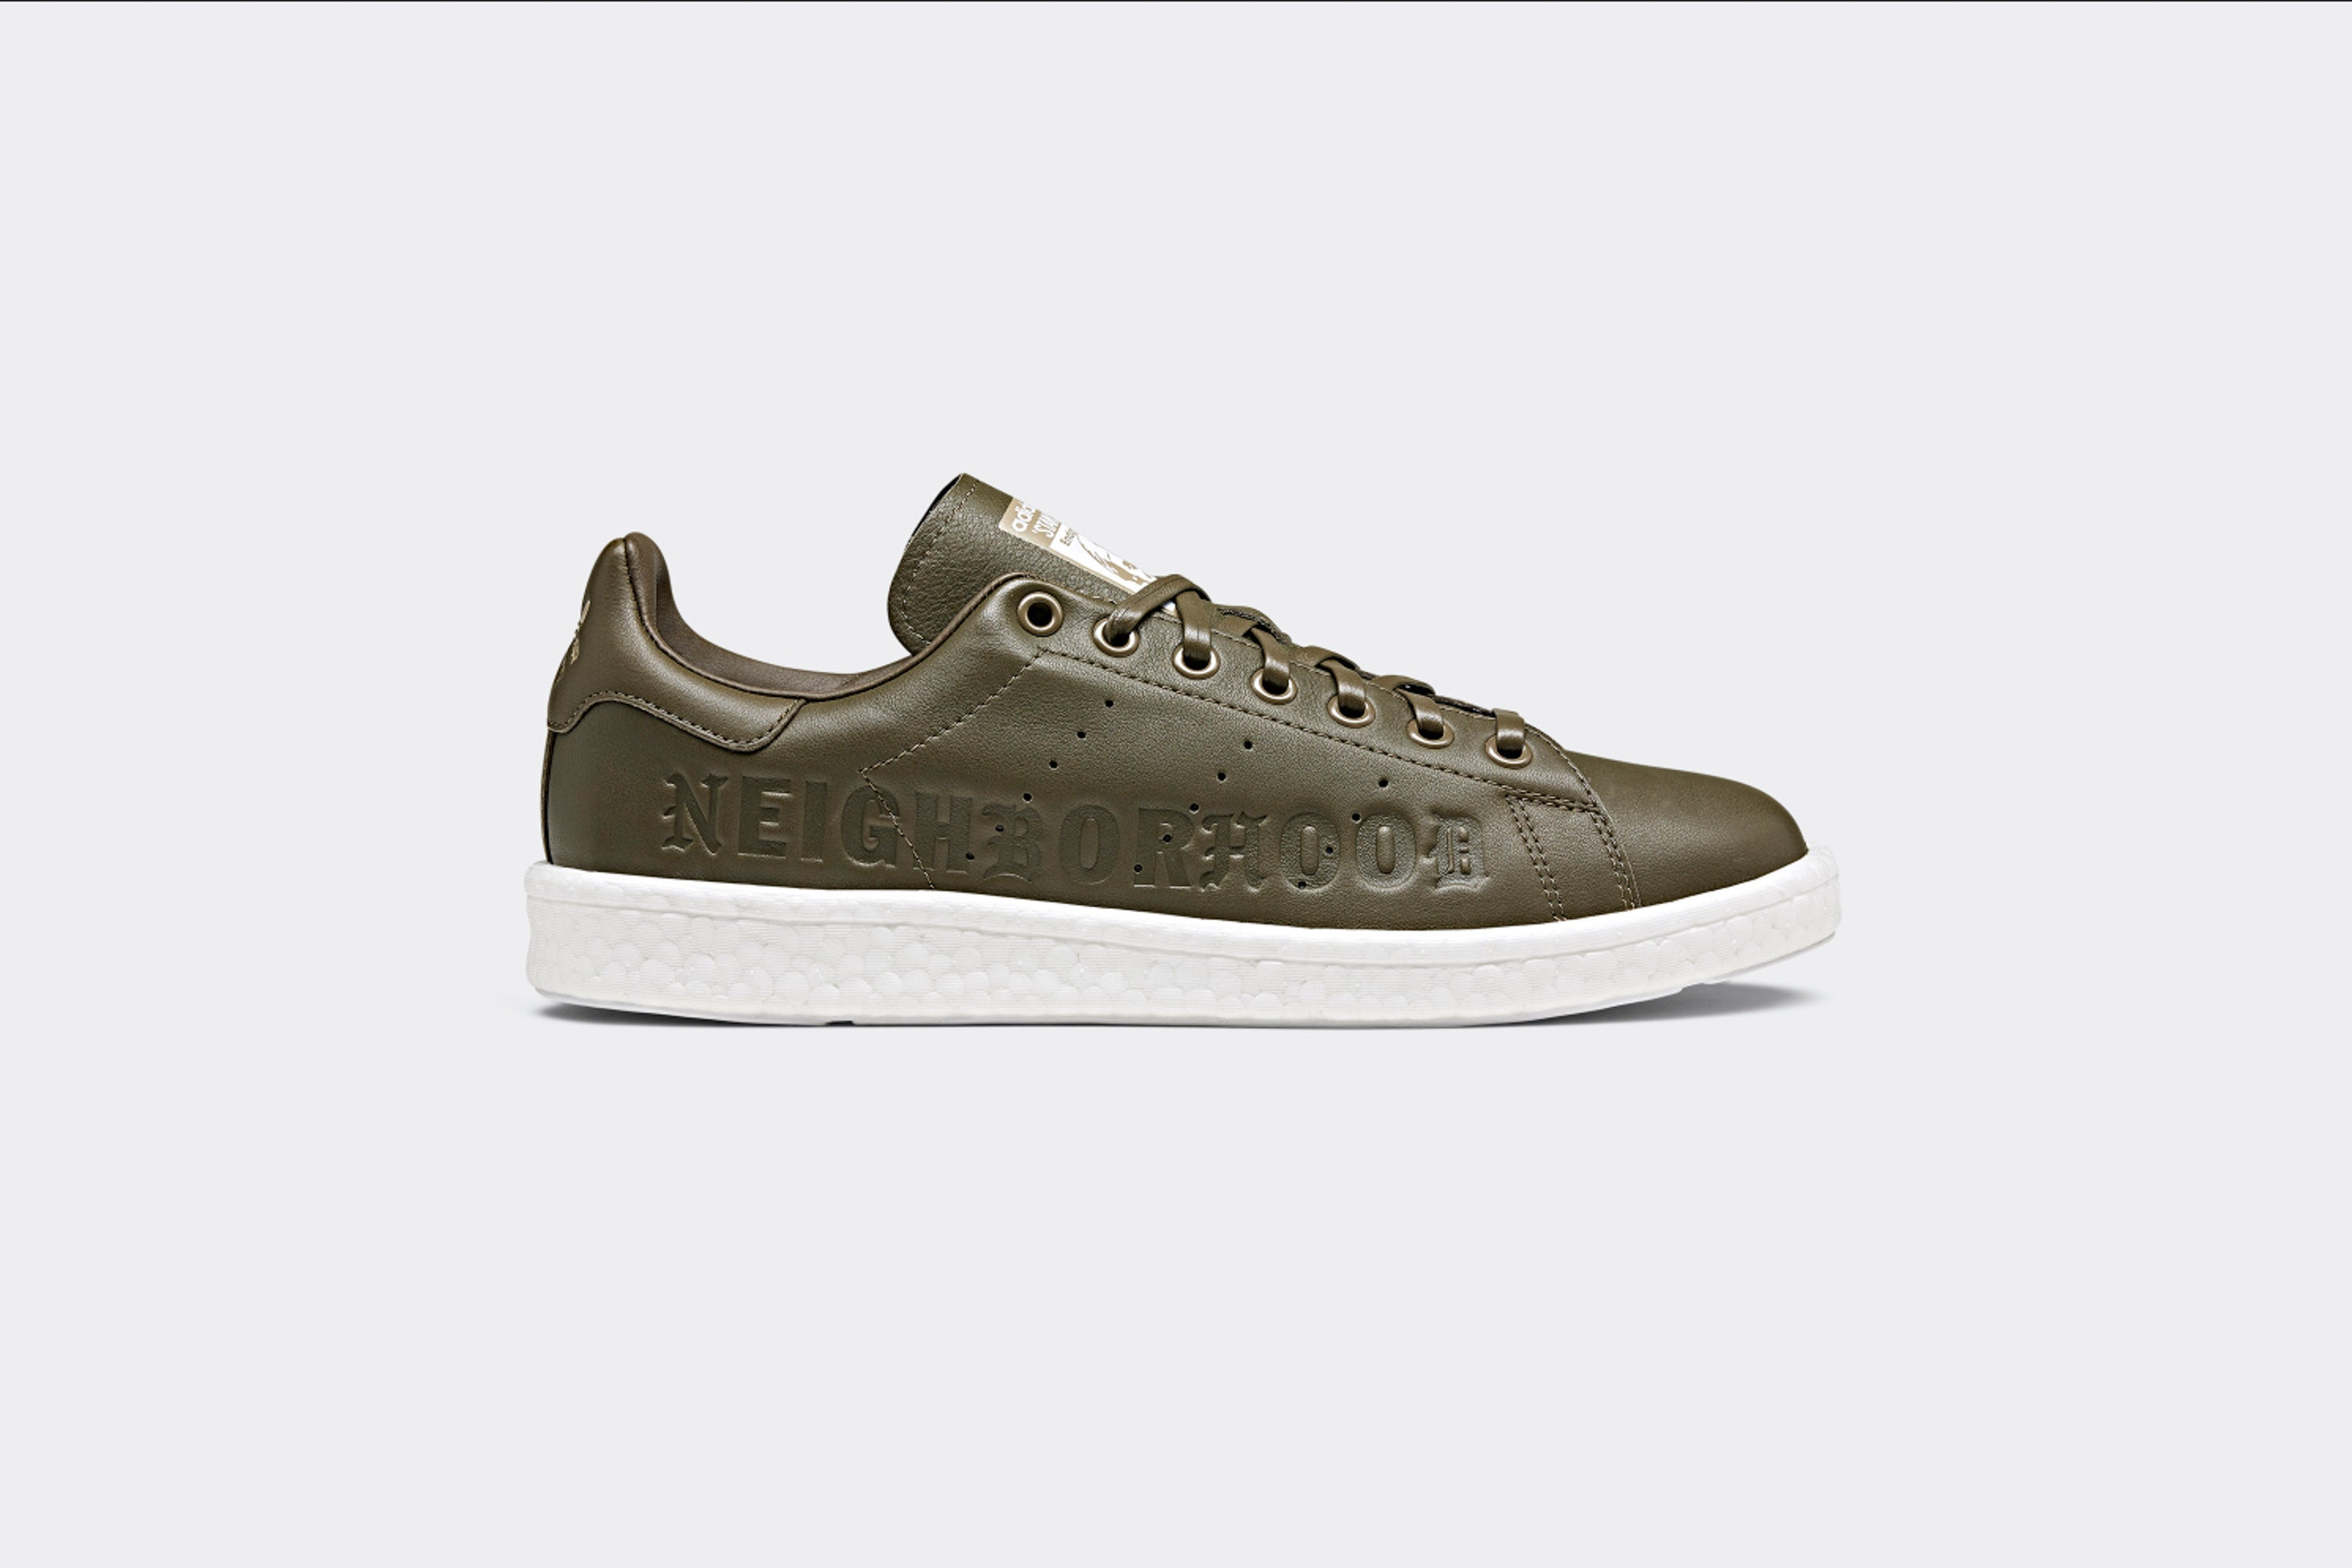 Neighborhood x adidas Originals 'Survival' Stan Smith Boost